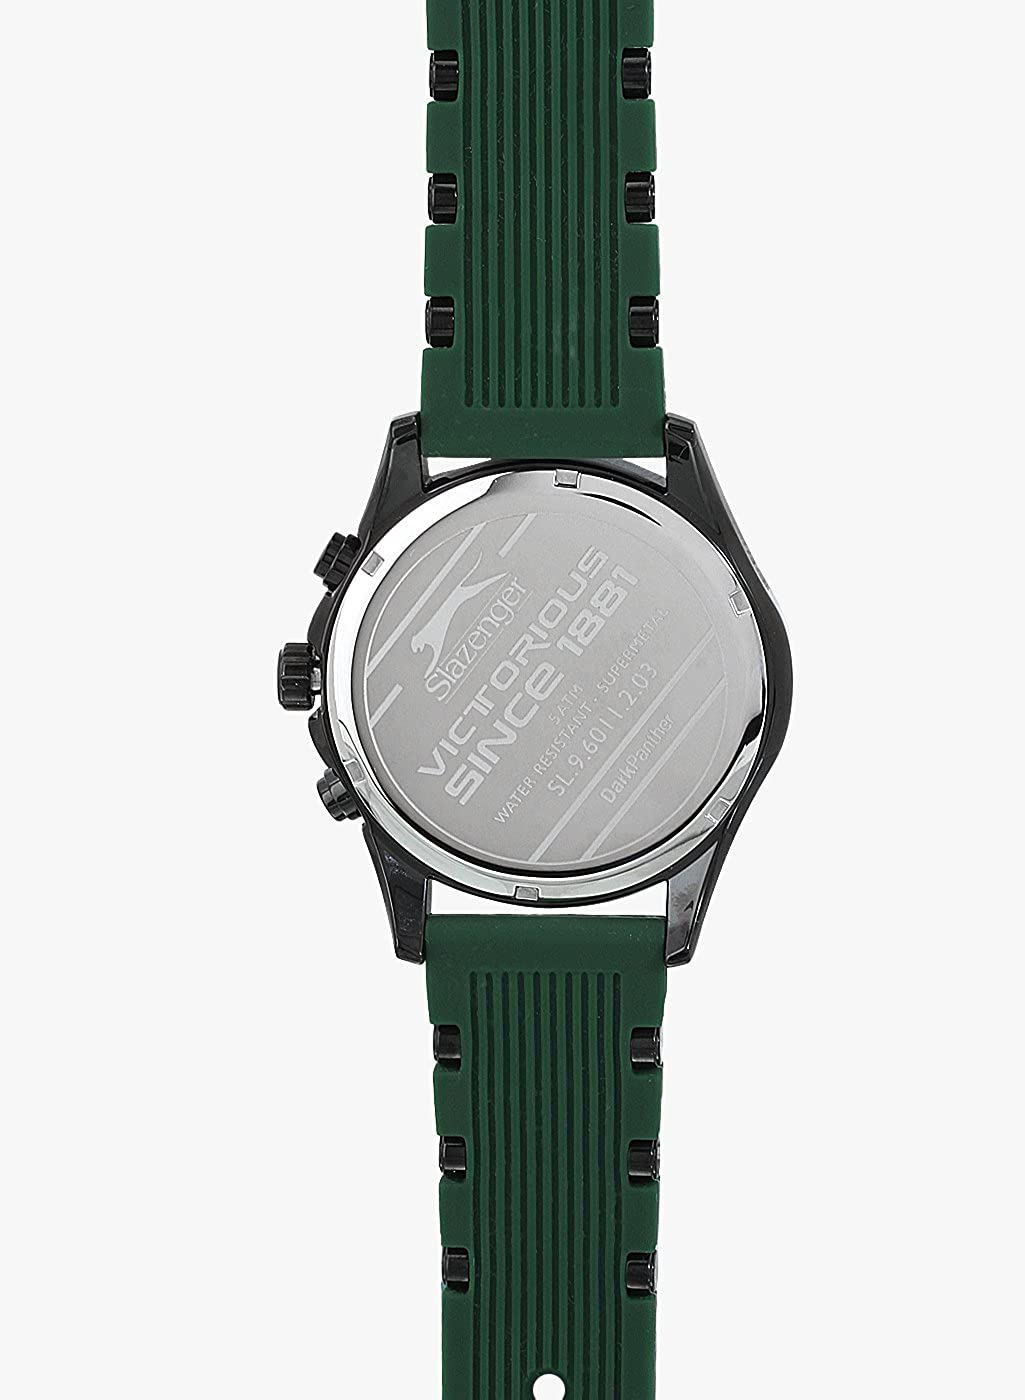 Buy Slazenger Green Dial Analogue Watch For Men Sl96011203 1084 Trolley Case 28 Inc Online At Low Prices In India